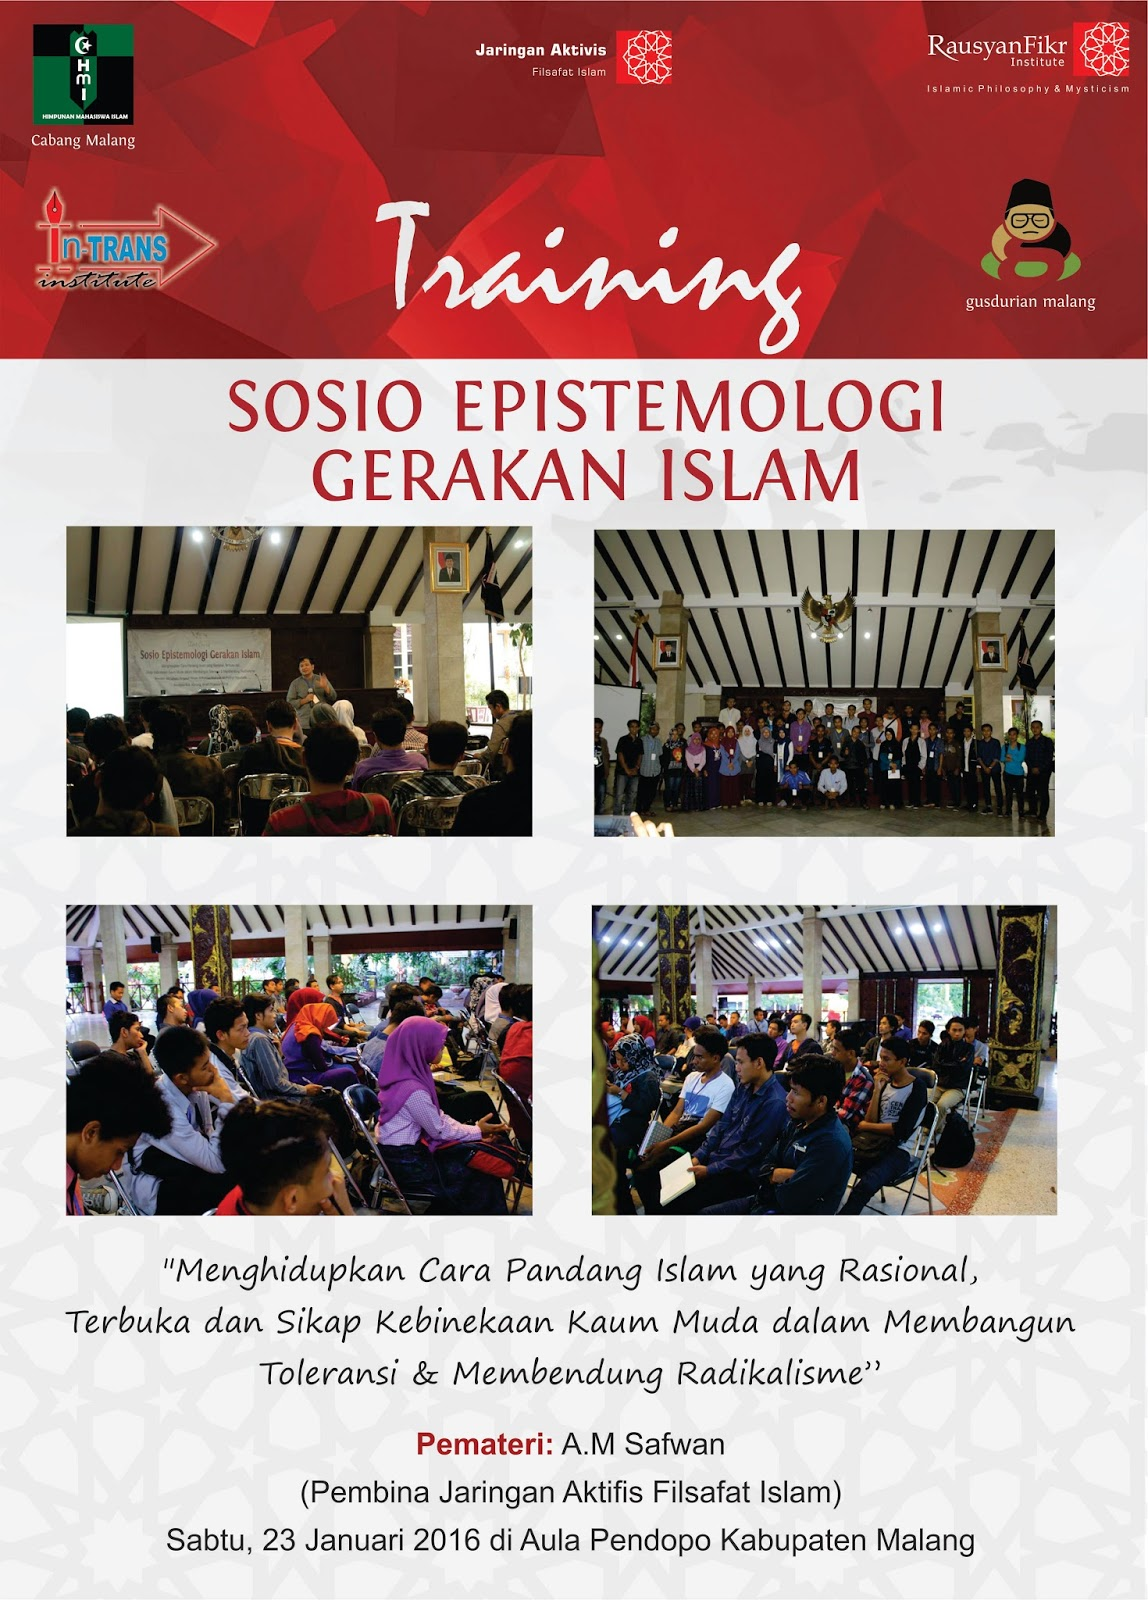 Training di Malang